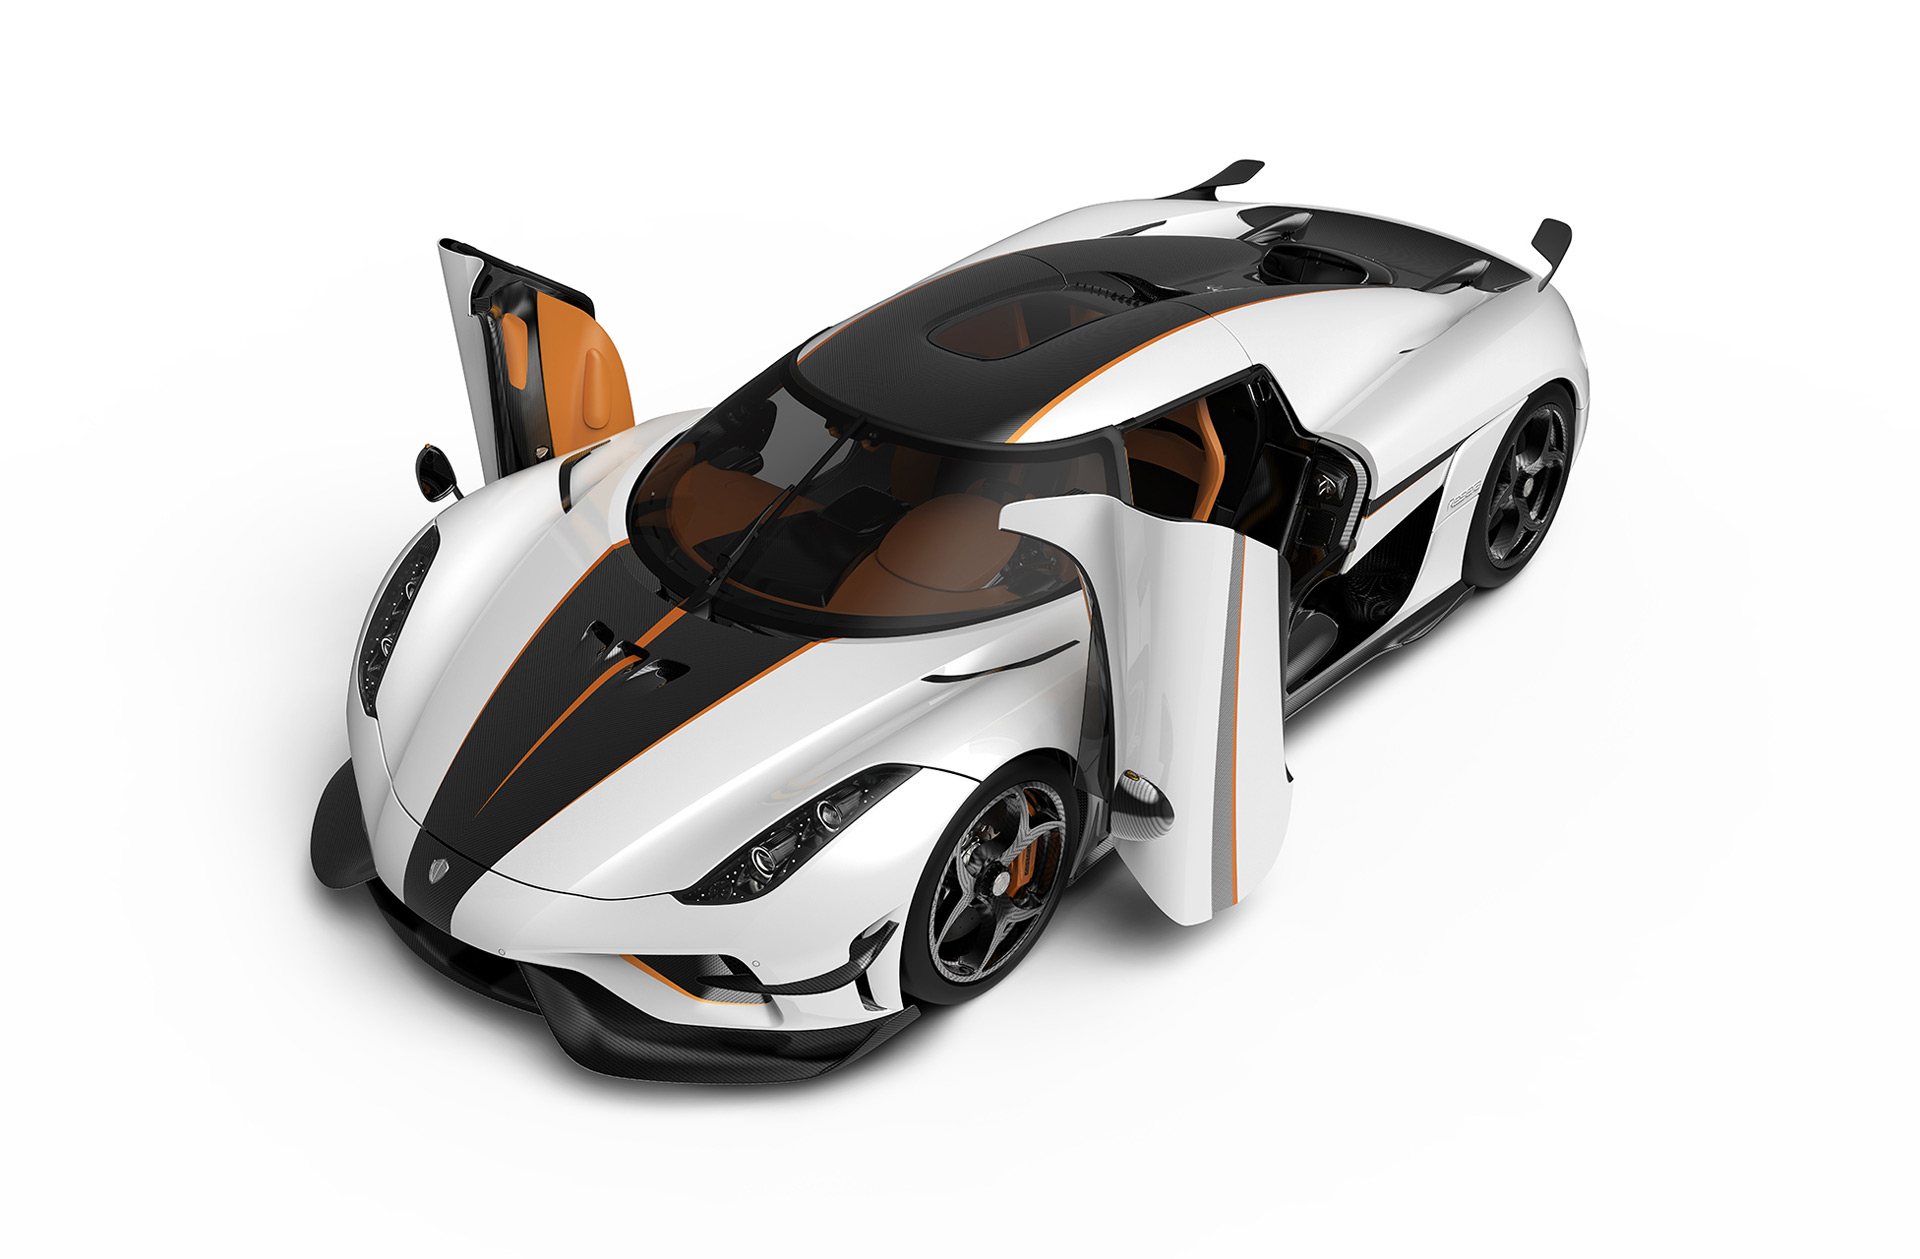 Koenigsegg Regera Gets Ghost High Downforce Package